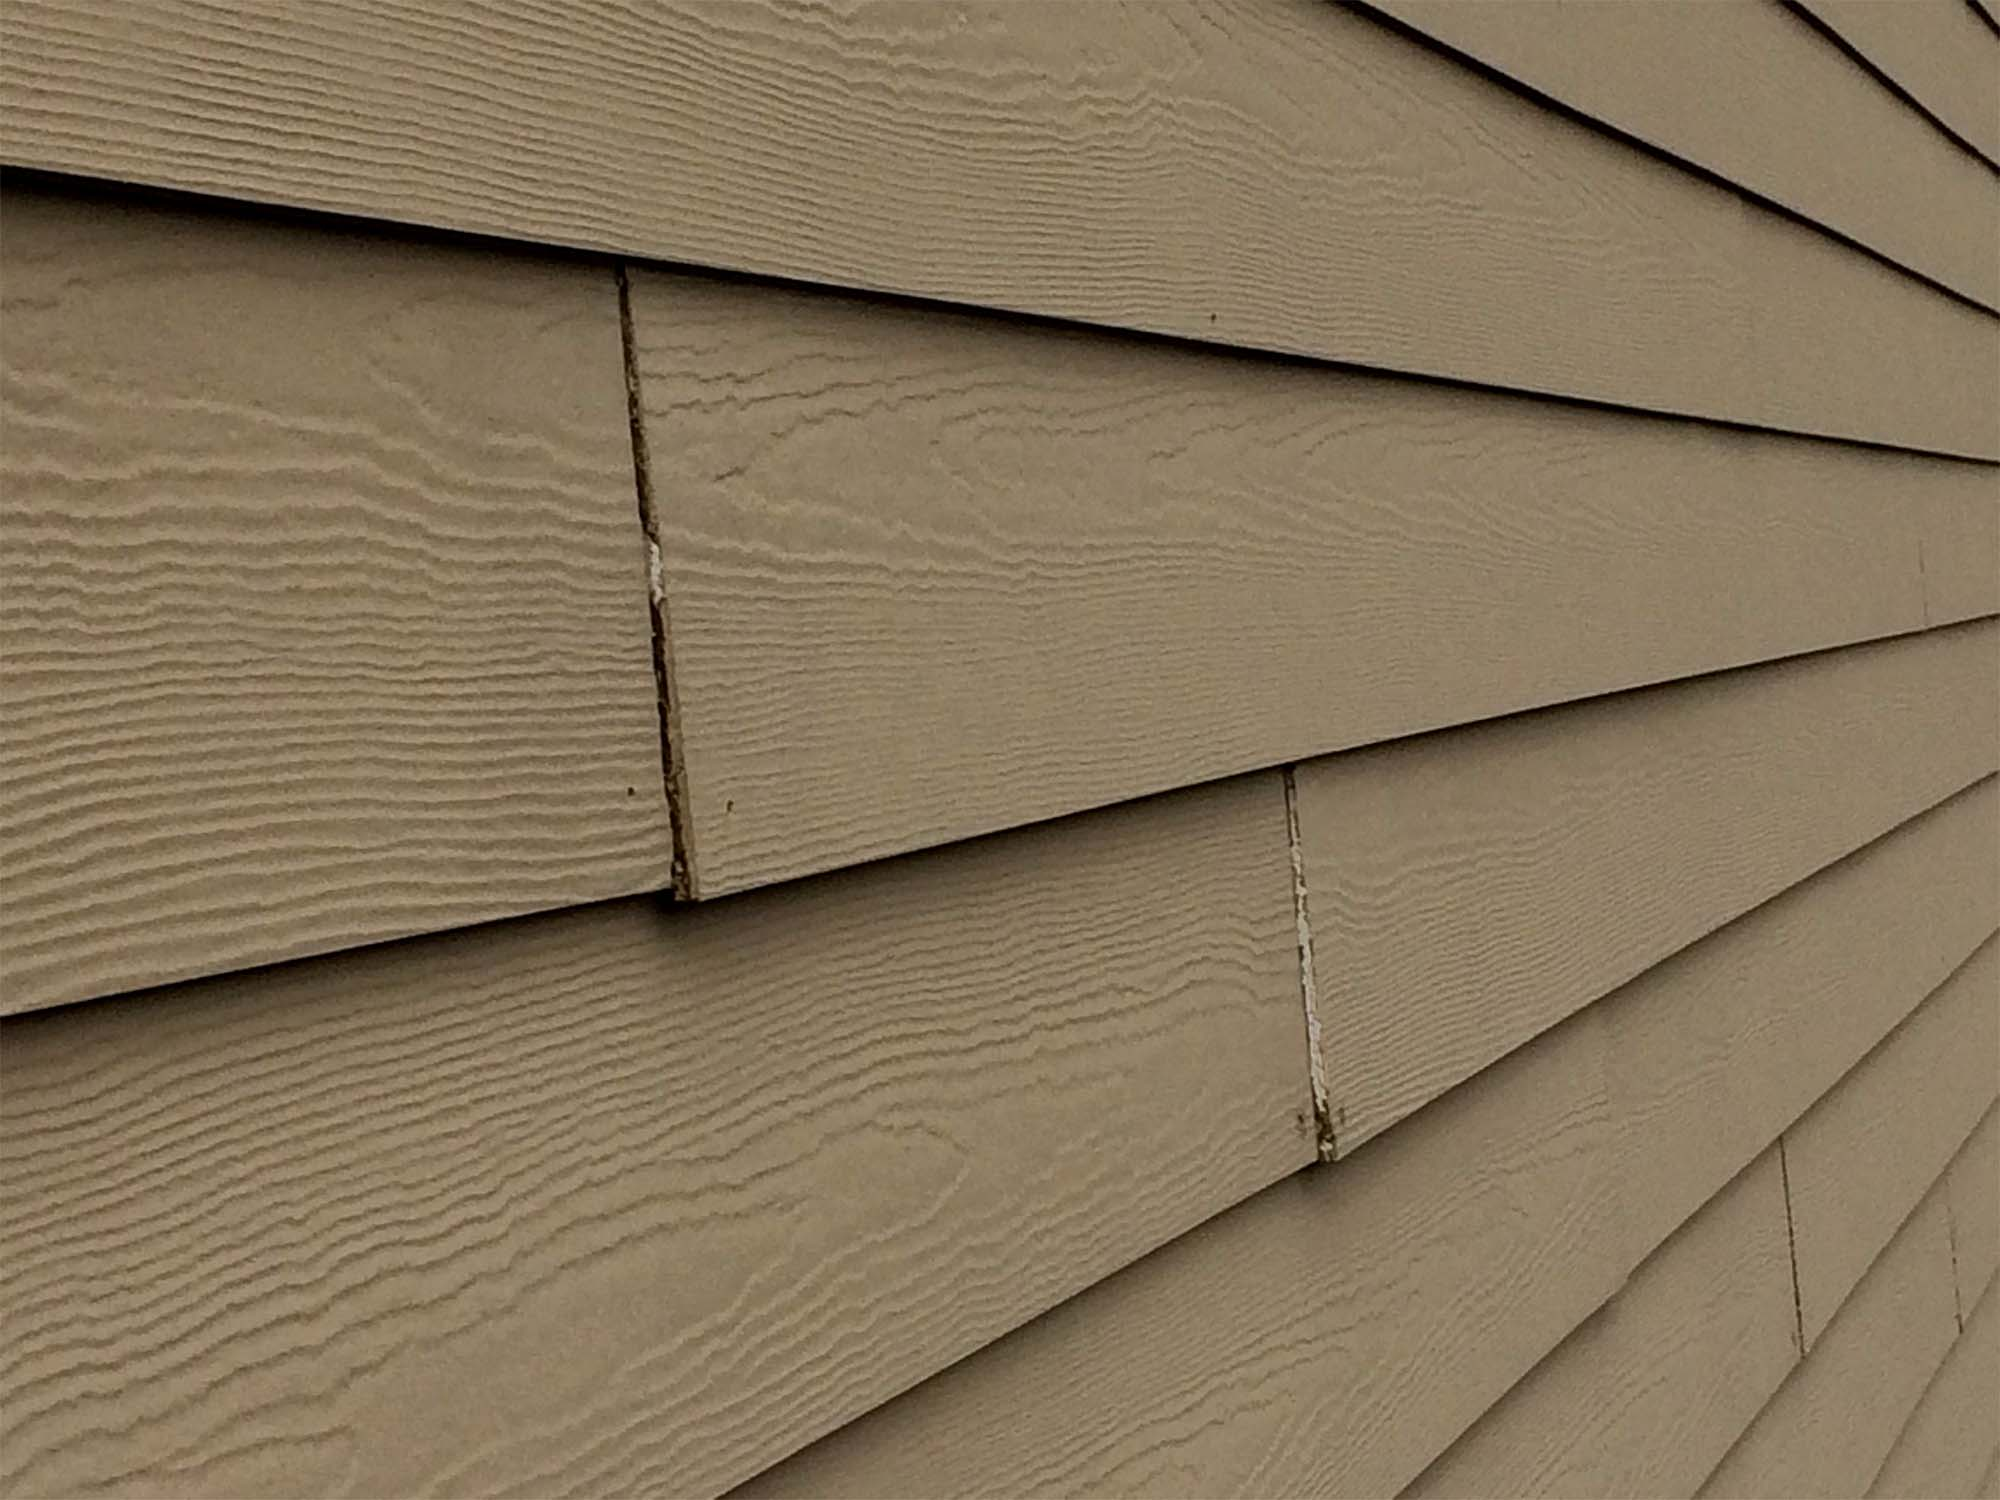 5 Worst Problems With Hardie Siding Should You Install